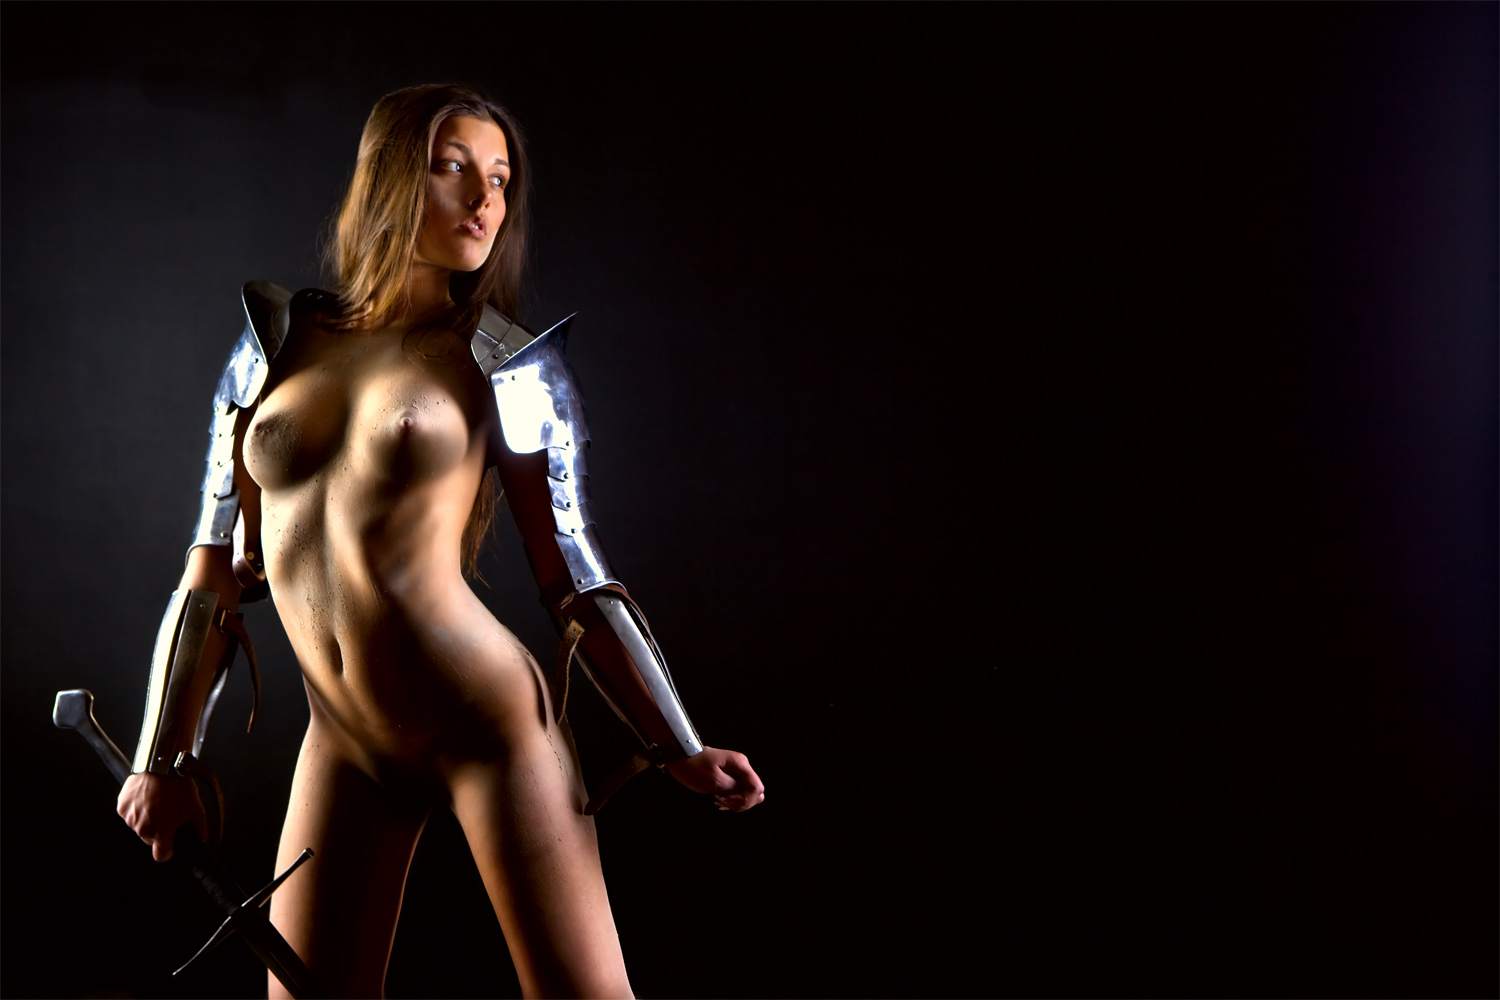 Erotic girl with sword nackt picture